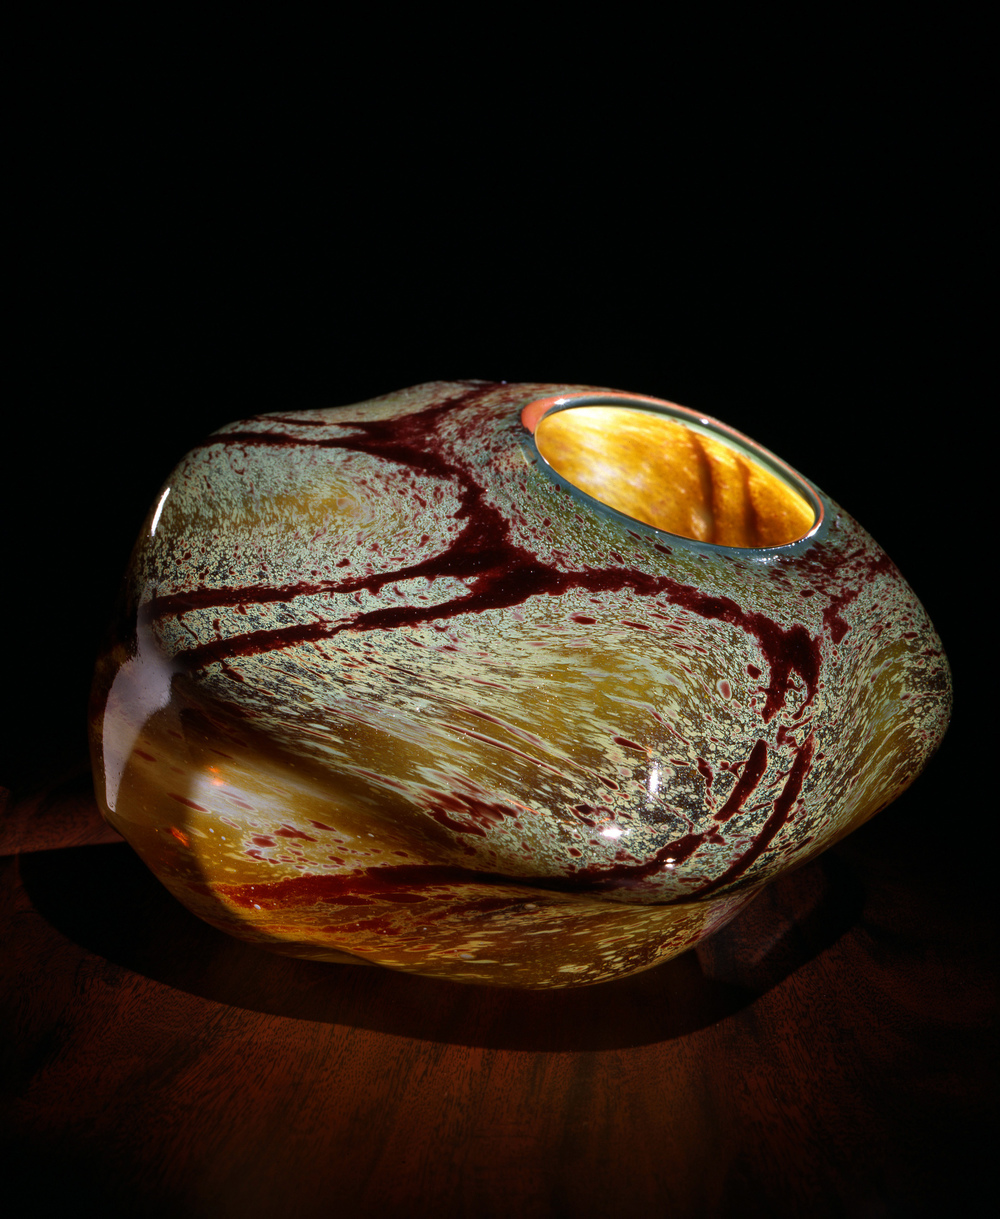 Dale Chihuly,  Italian Ochre Macchia with Apricot Lip Wrap  (1981, glass, 6 x 8 x 8 inches), DC.107